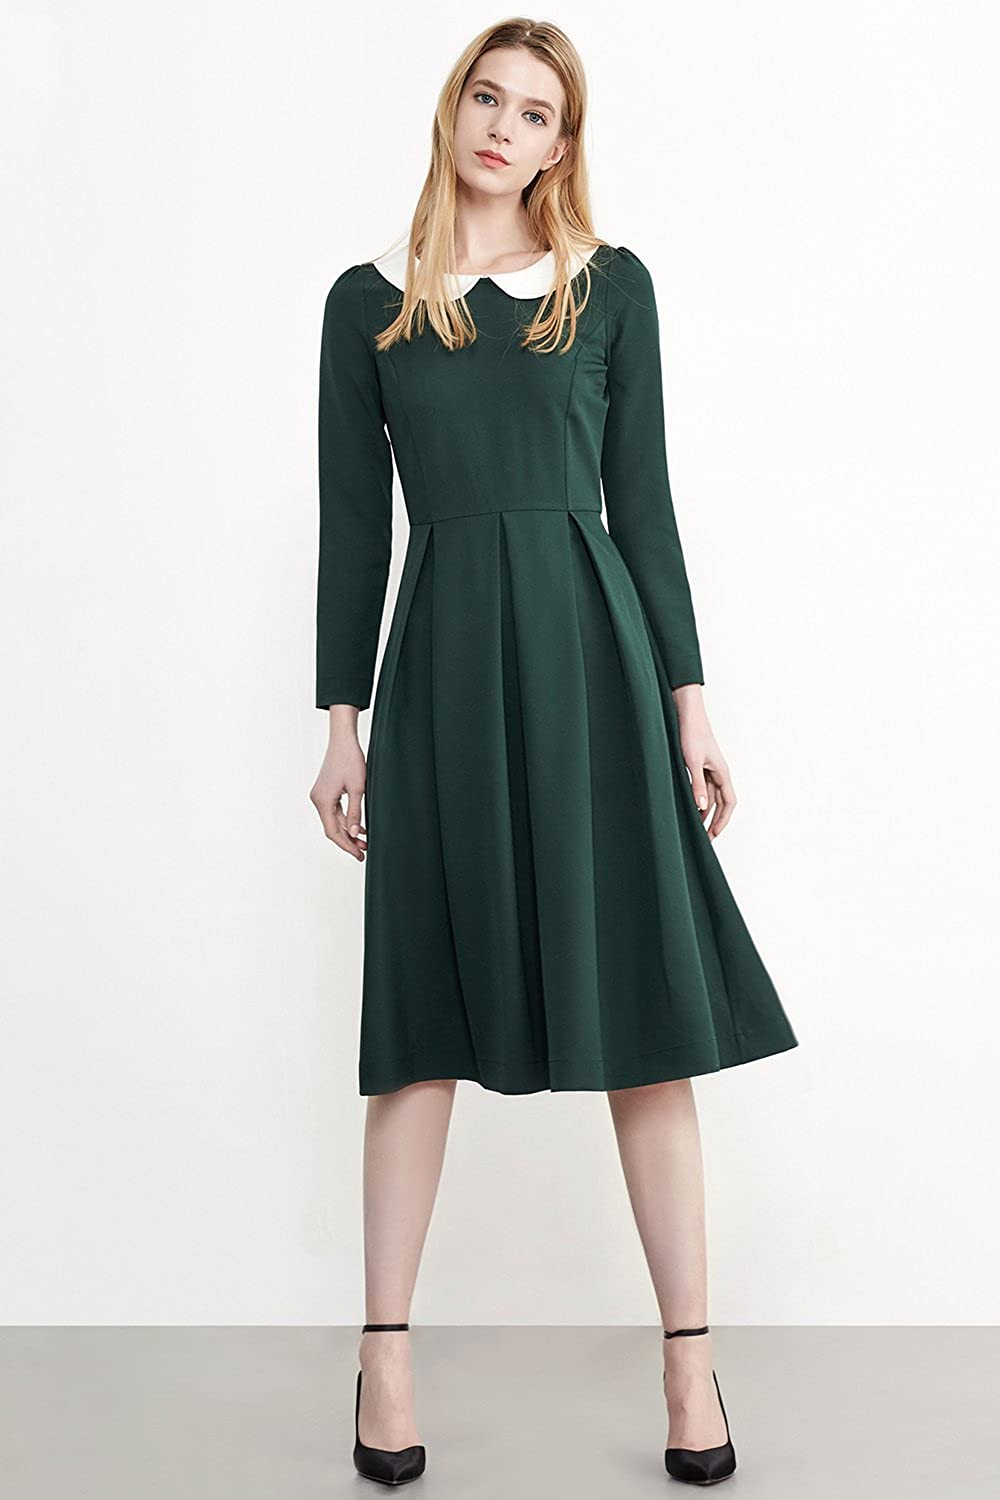 1940s Children's Clothing: Girls, Boys, Baby, Toddler Simple Retro Elegant Peter Pan Collar Long Sleeves Casual Skater Swing Dress $19.99 AT vintagedancer.com